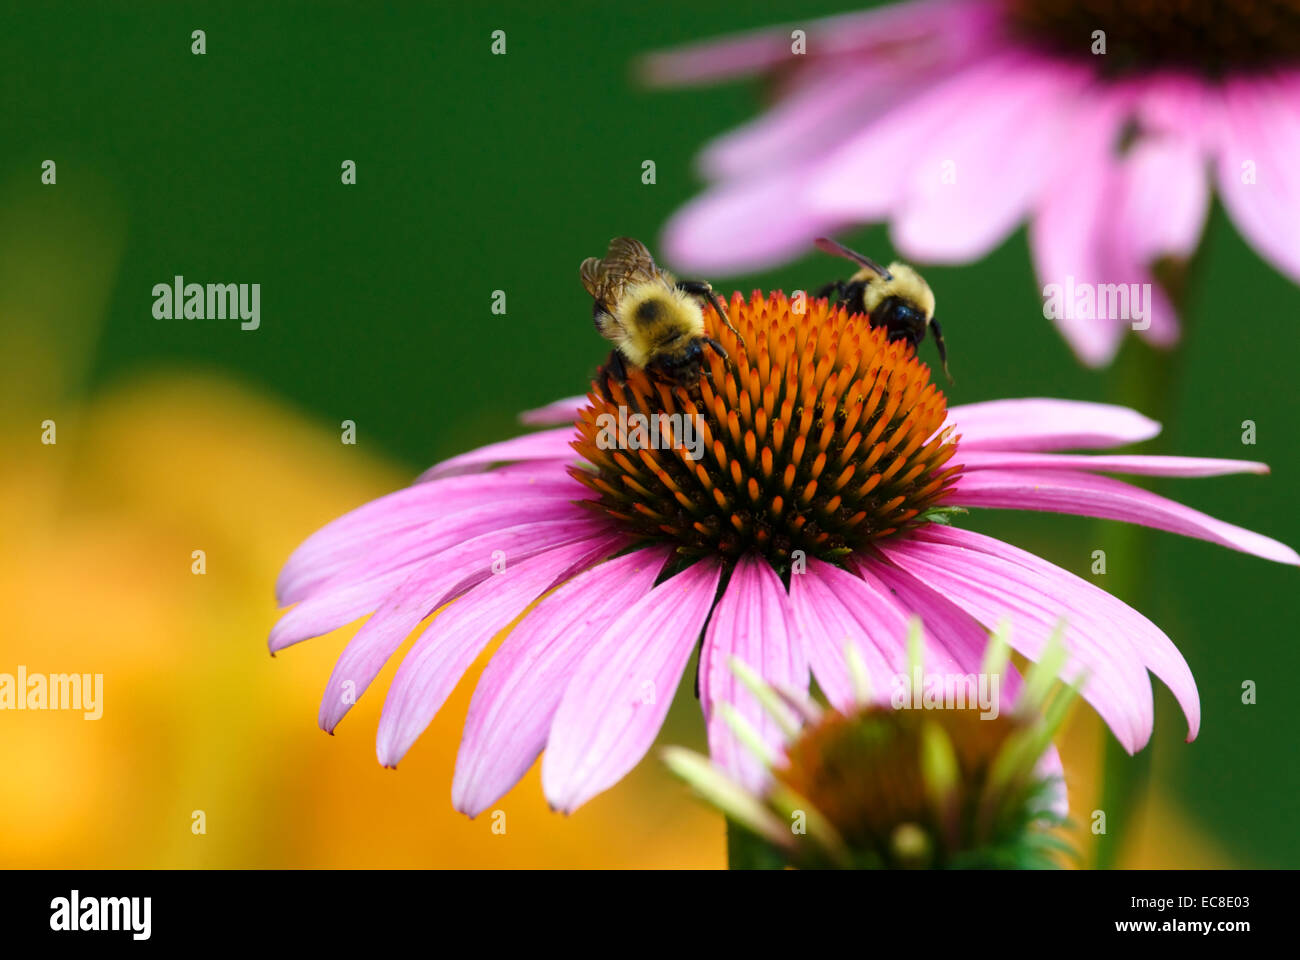 A pink Echinacea, commonly known as a coneflower with bees feeding on nectar, close-up. - Stock Image